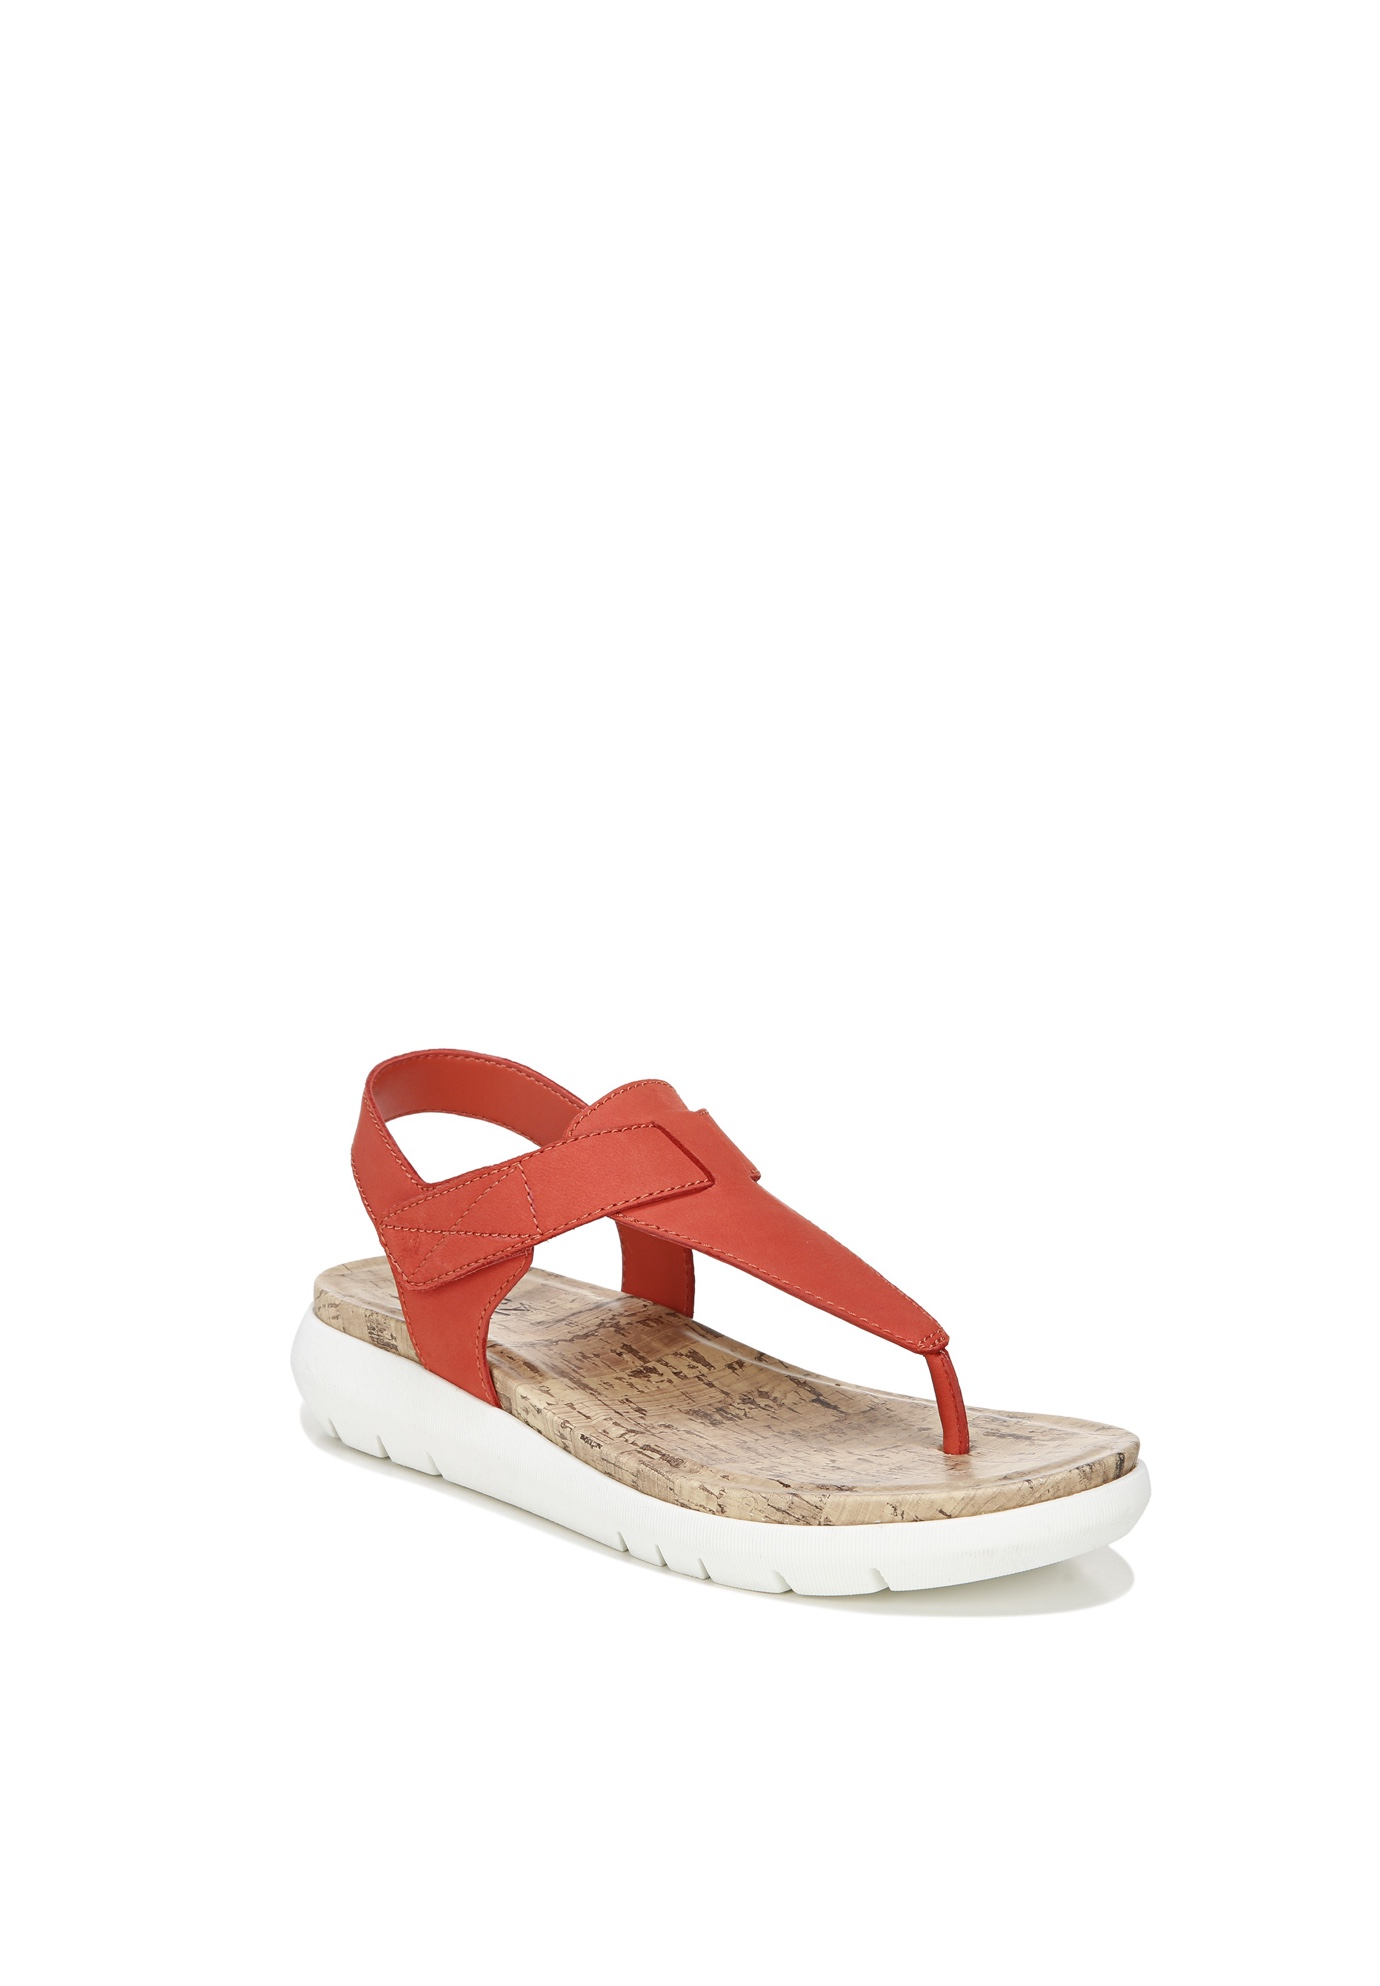 Lincoln Sandal by Naturalizer,